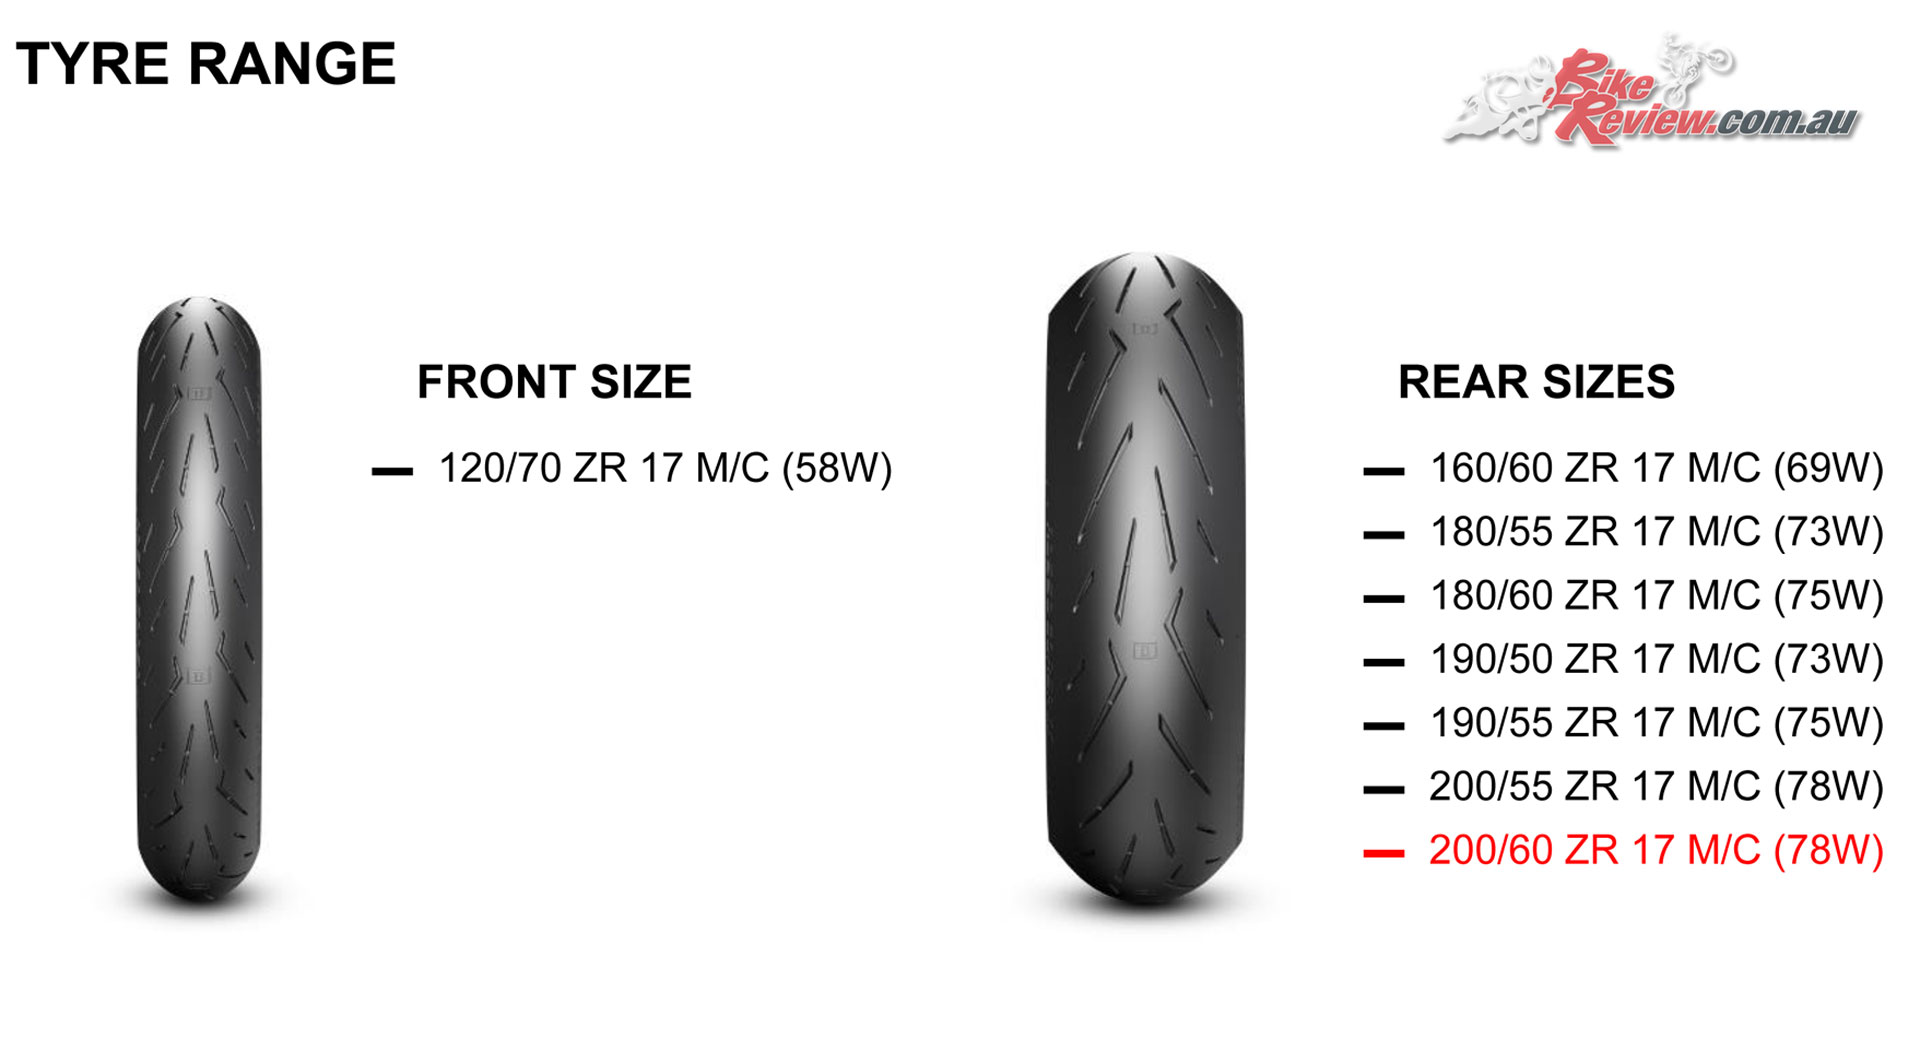 Pirelli Diablo Rosso Corsa II sizes chart - These tyres are expected in June 2018, with prices TBA